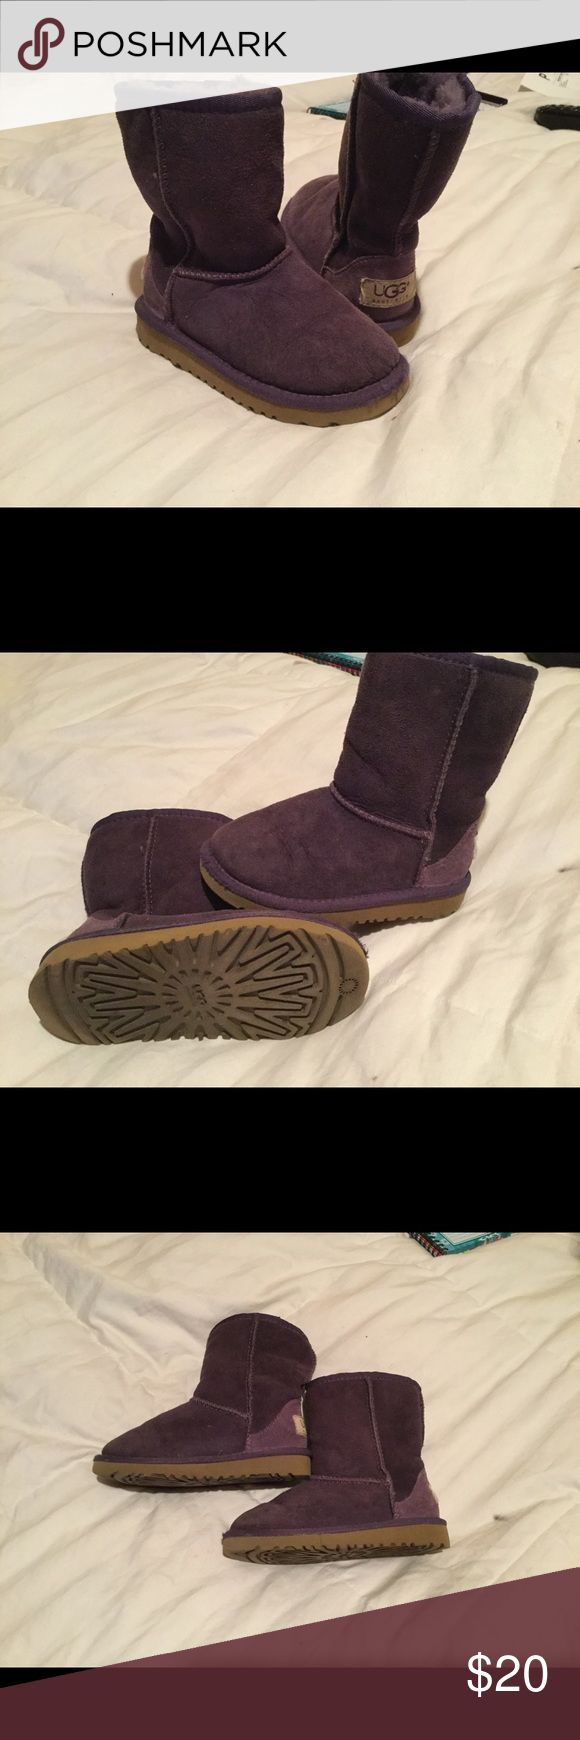 Girls UGG Boots Excellent condition, lightly used, Girls UGG boots. Plum purple color, size 10 UGG Shoes Boots